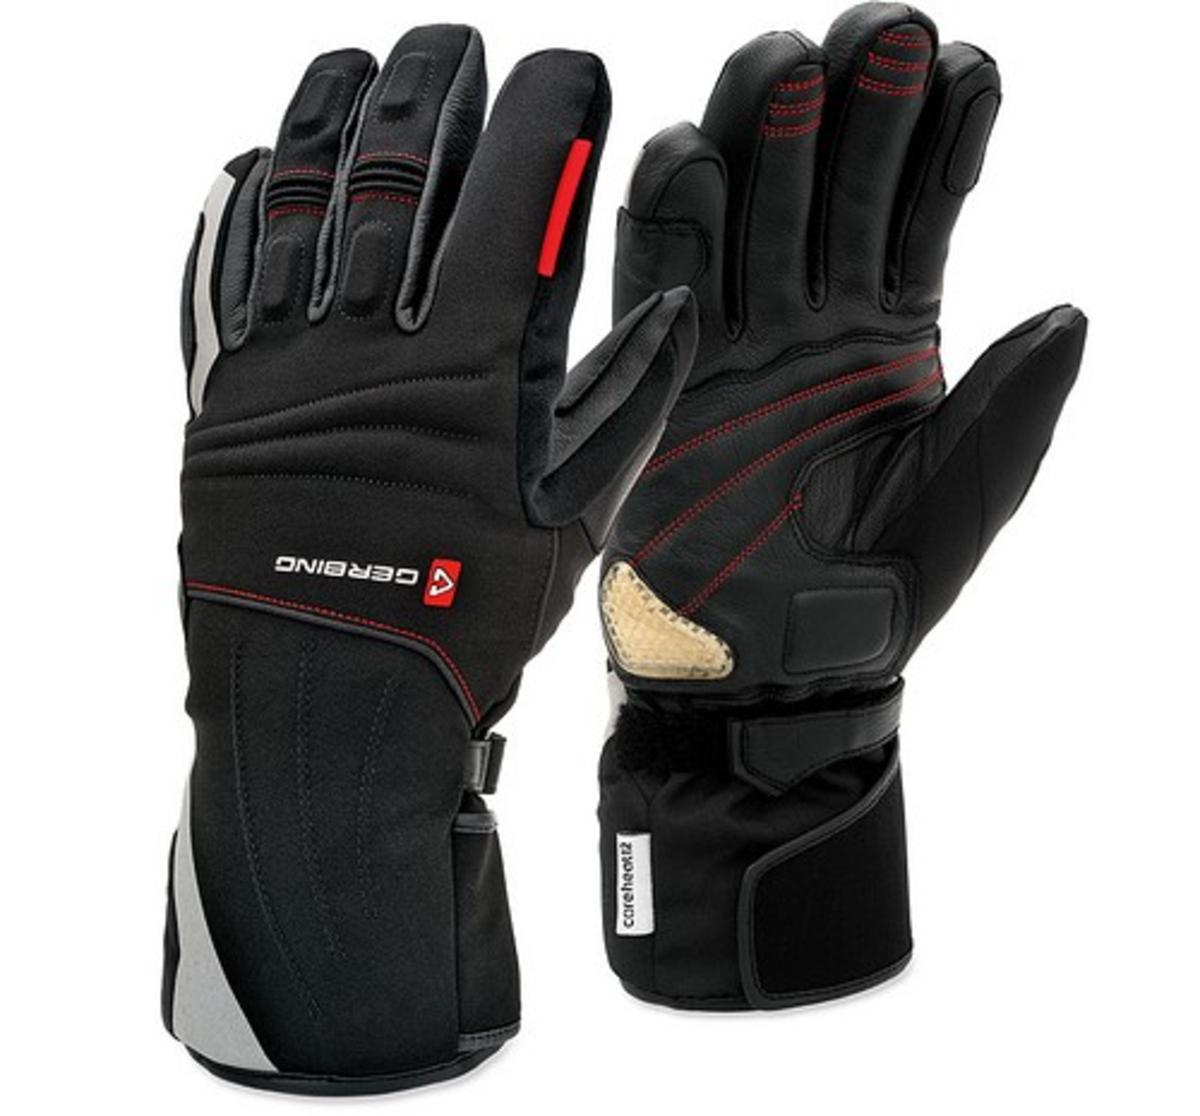 Gerbing Ex Pro Heated Gloves 12v Motorcycle The Warming Store